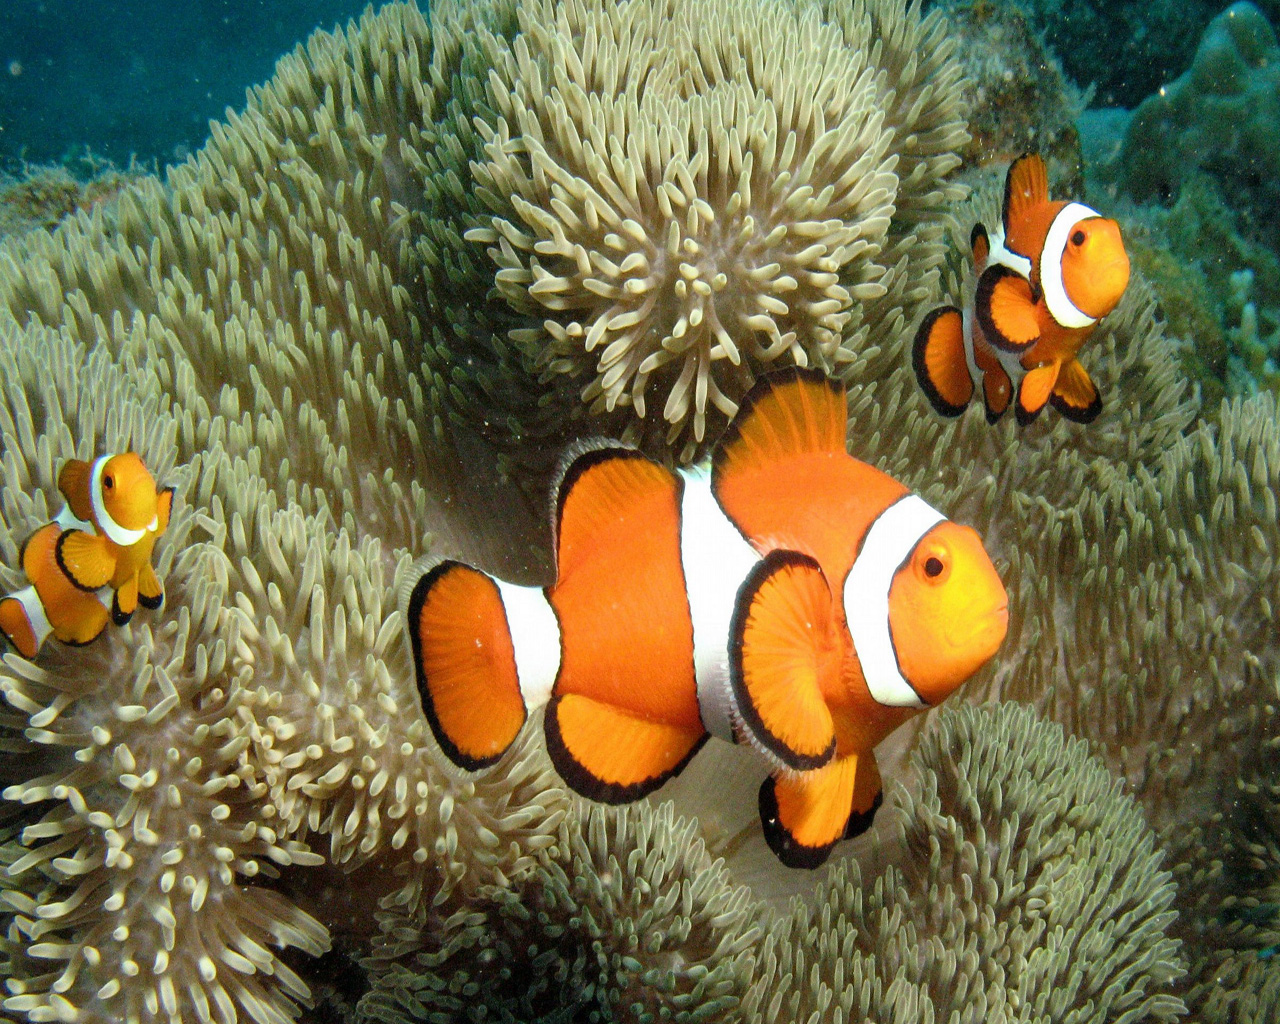 Clown fish fun animals wiki videos pictures stories for Pictures of clown fish